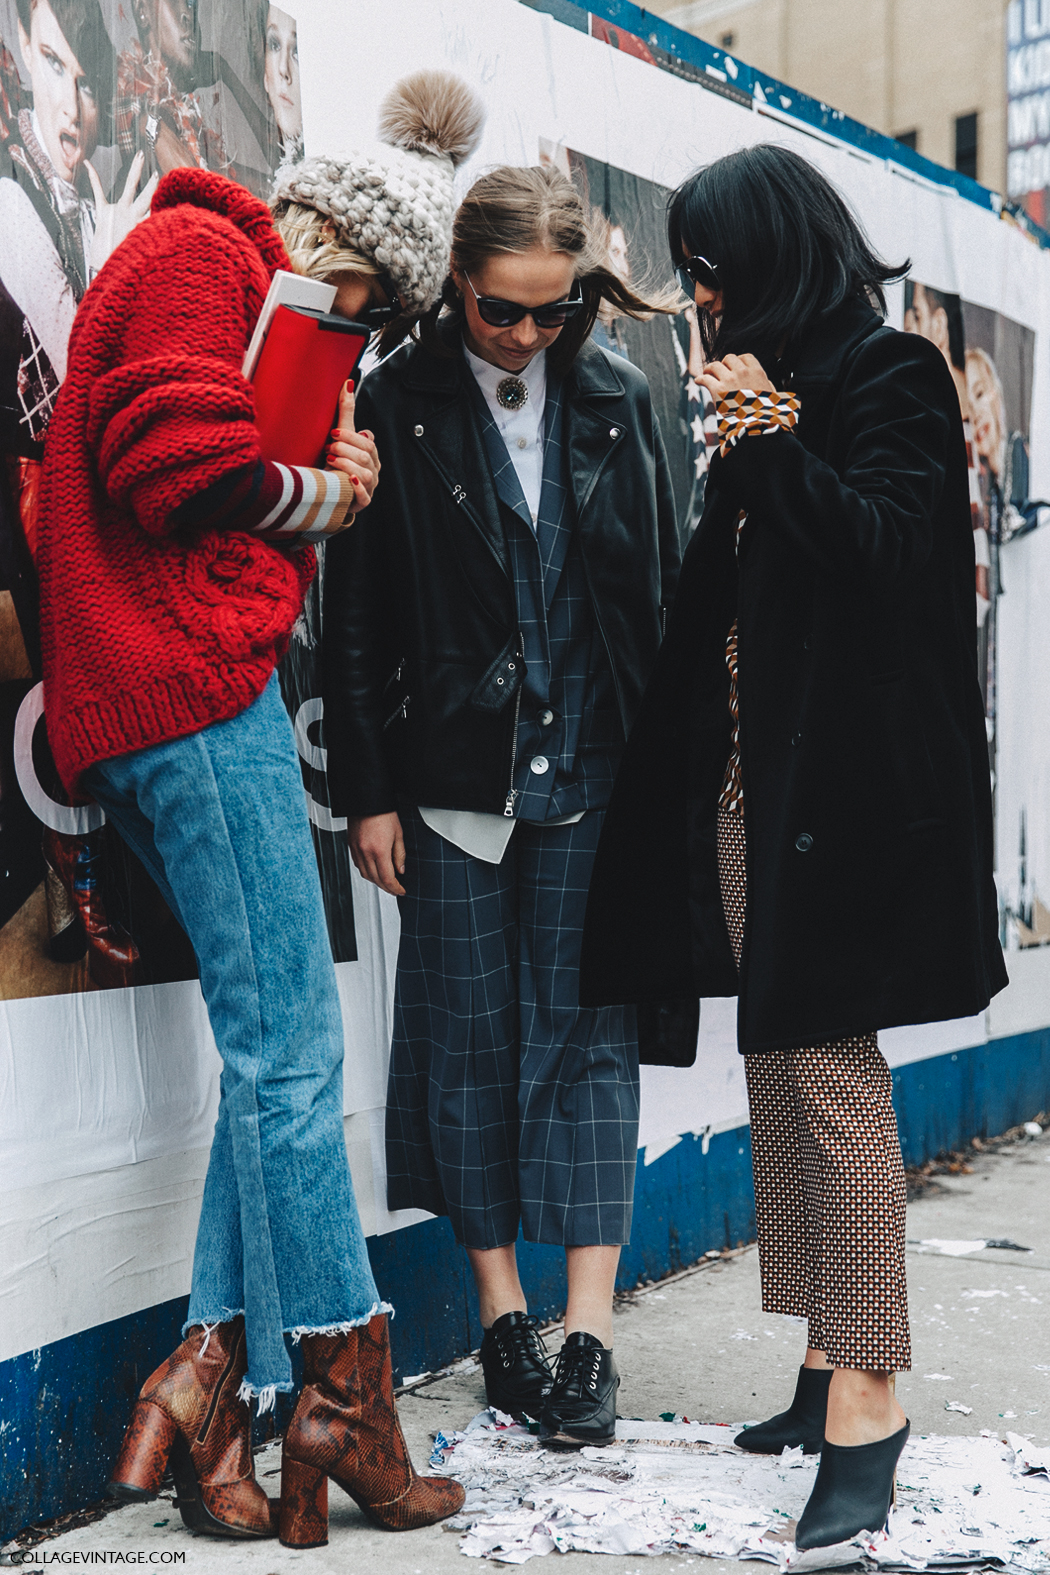 Nyfw New York Fashion Week Fall Winter 17 Street Style Studded Coat Nike Sweater Jeans